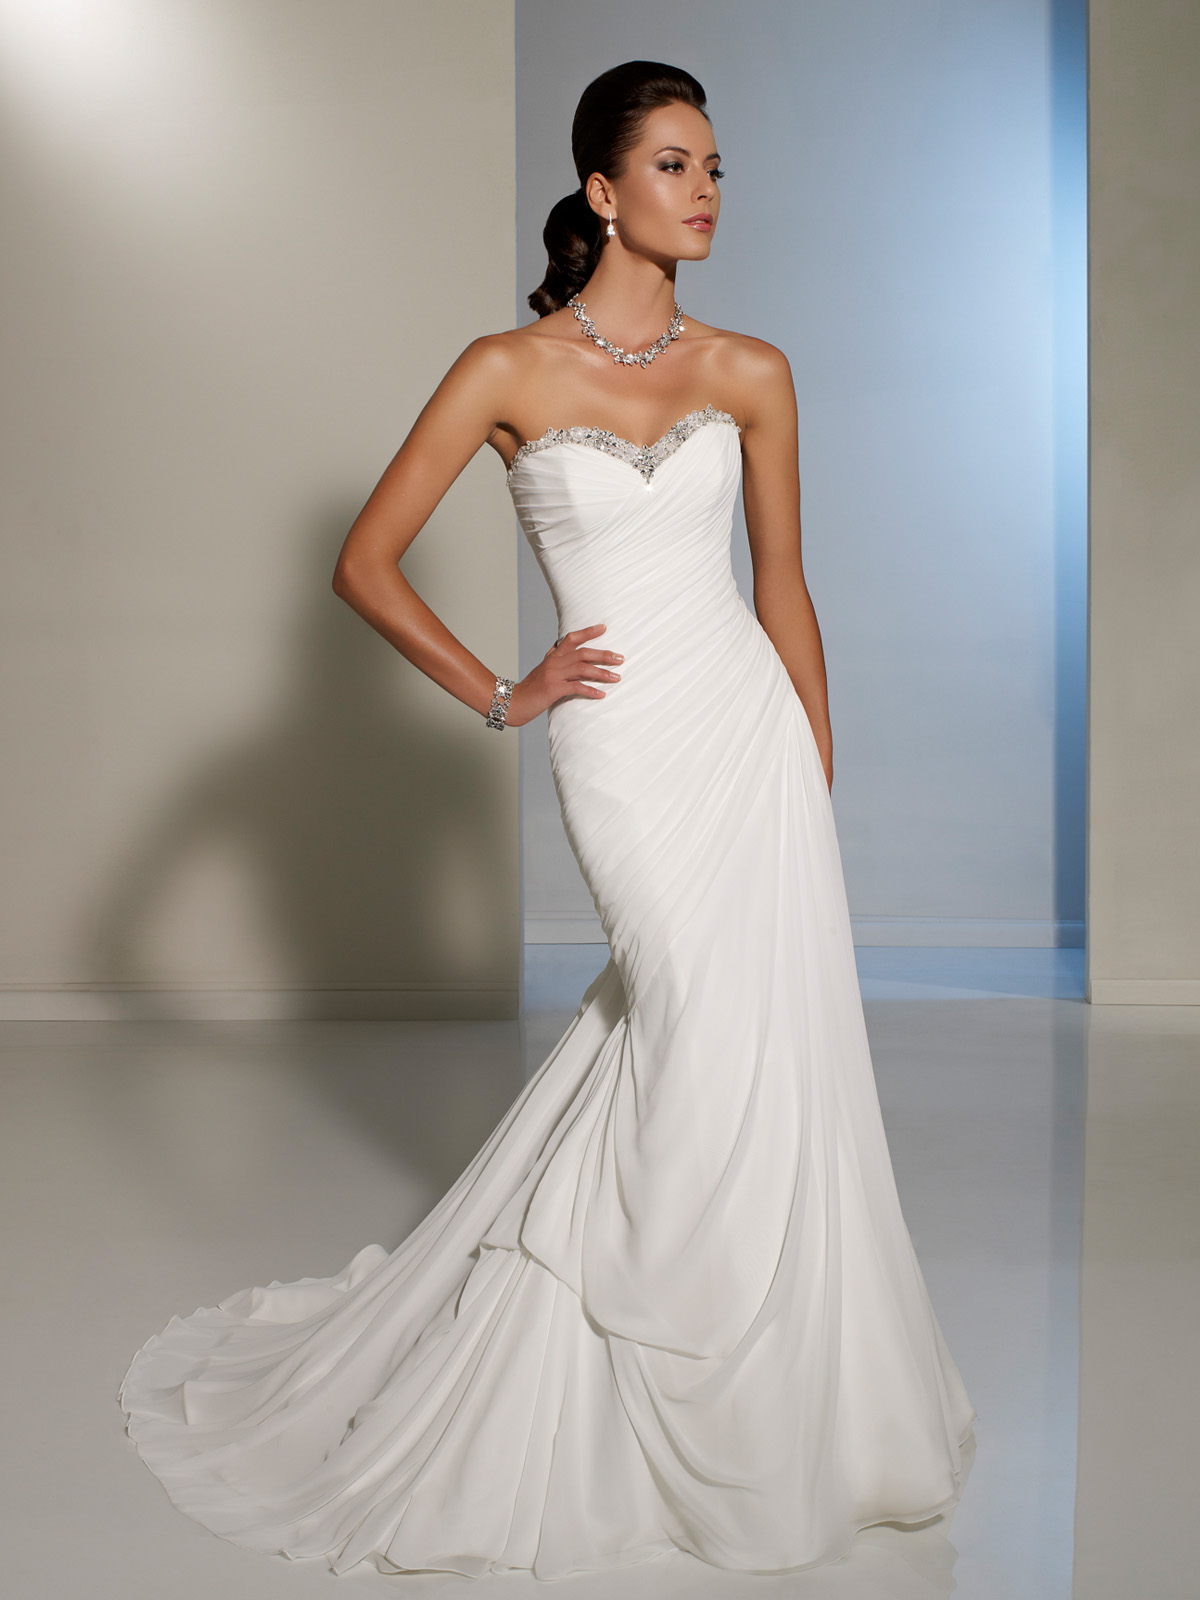 2012-wedding-dress-sophia-tolli-for-mon-cheri-bridal-gowns-y11225.original